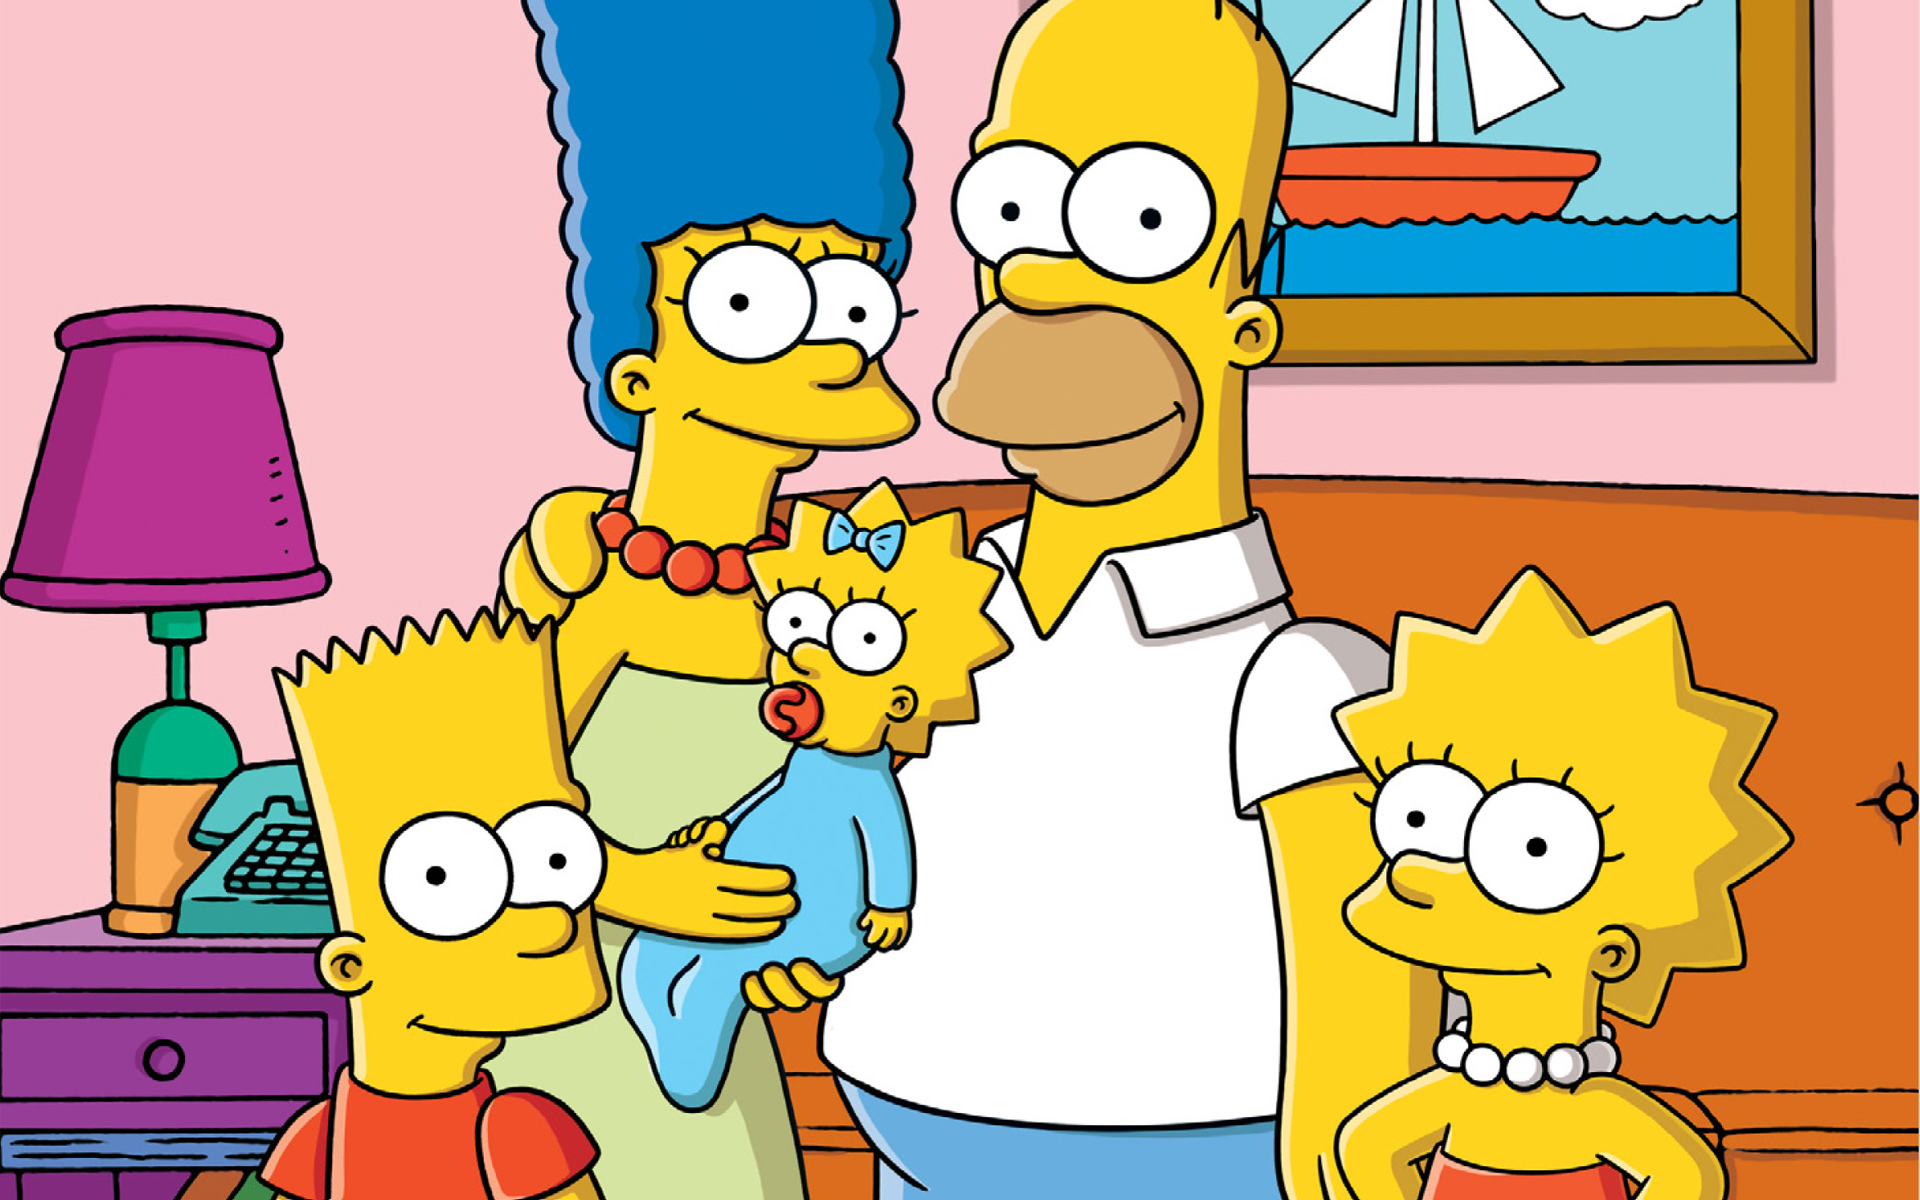 Guess the iconic character The Simpsons is killing off in Season 25